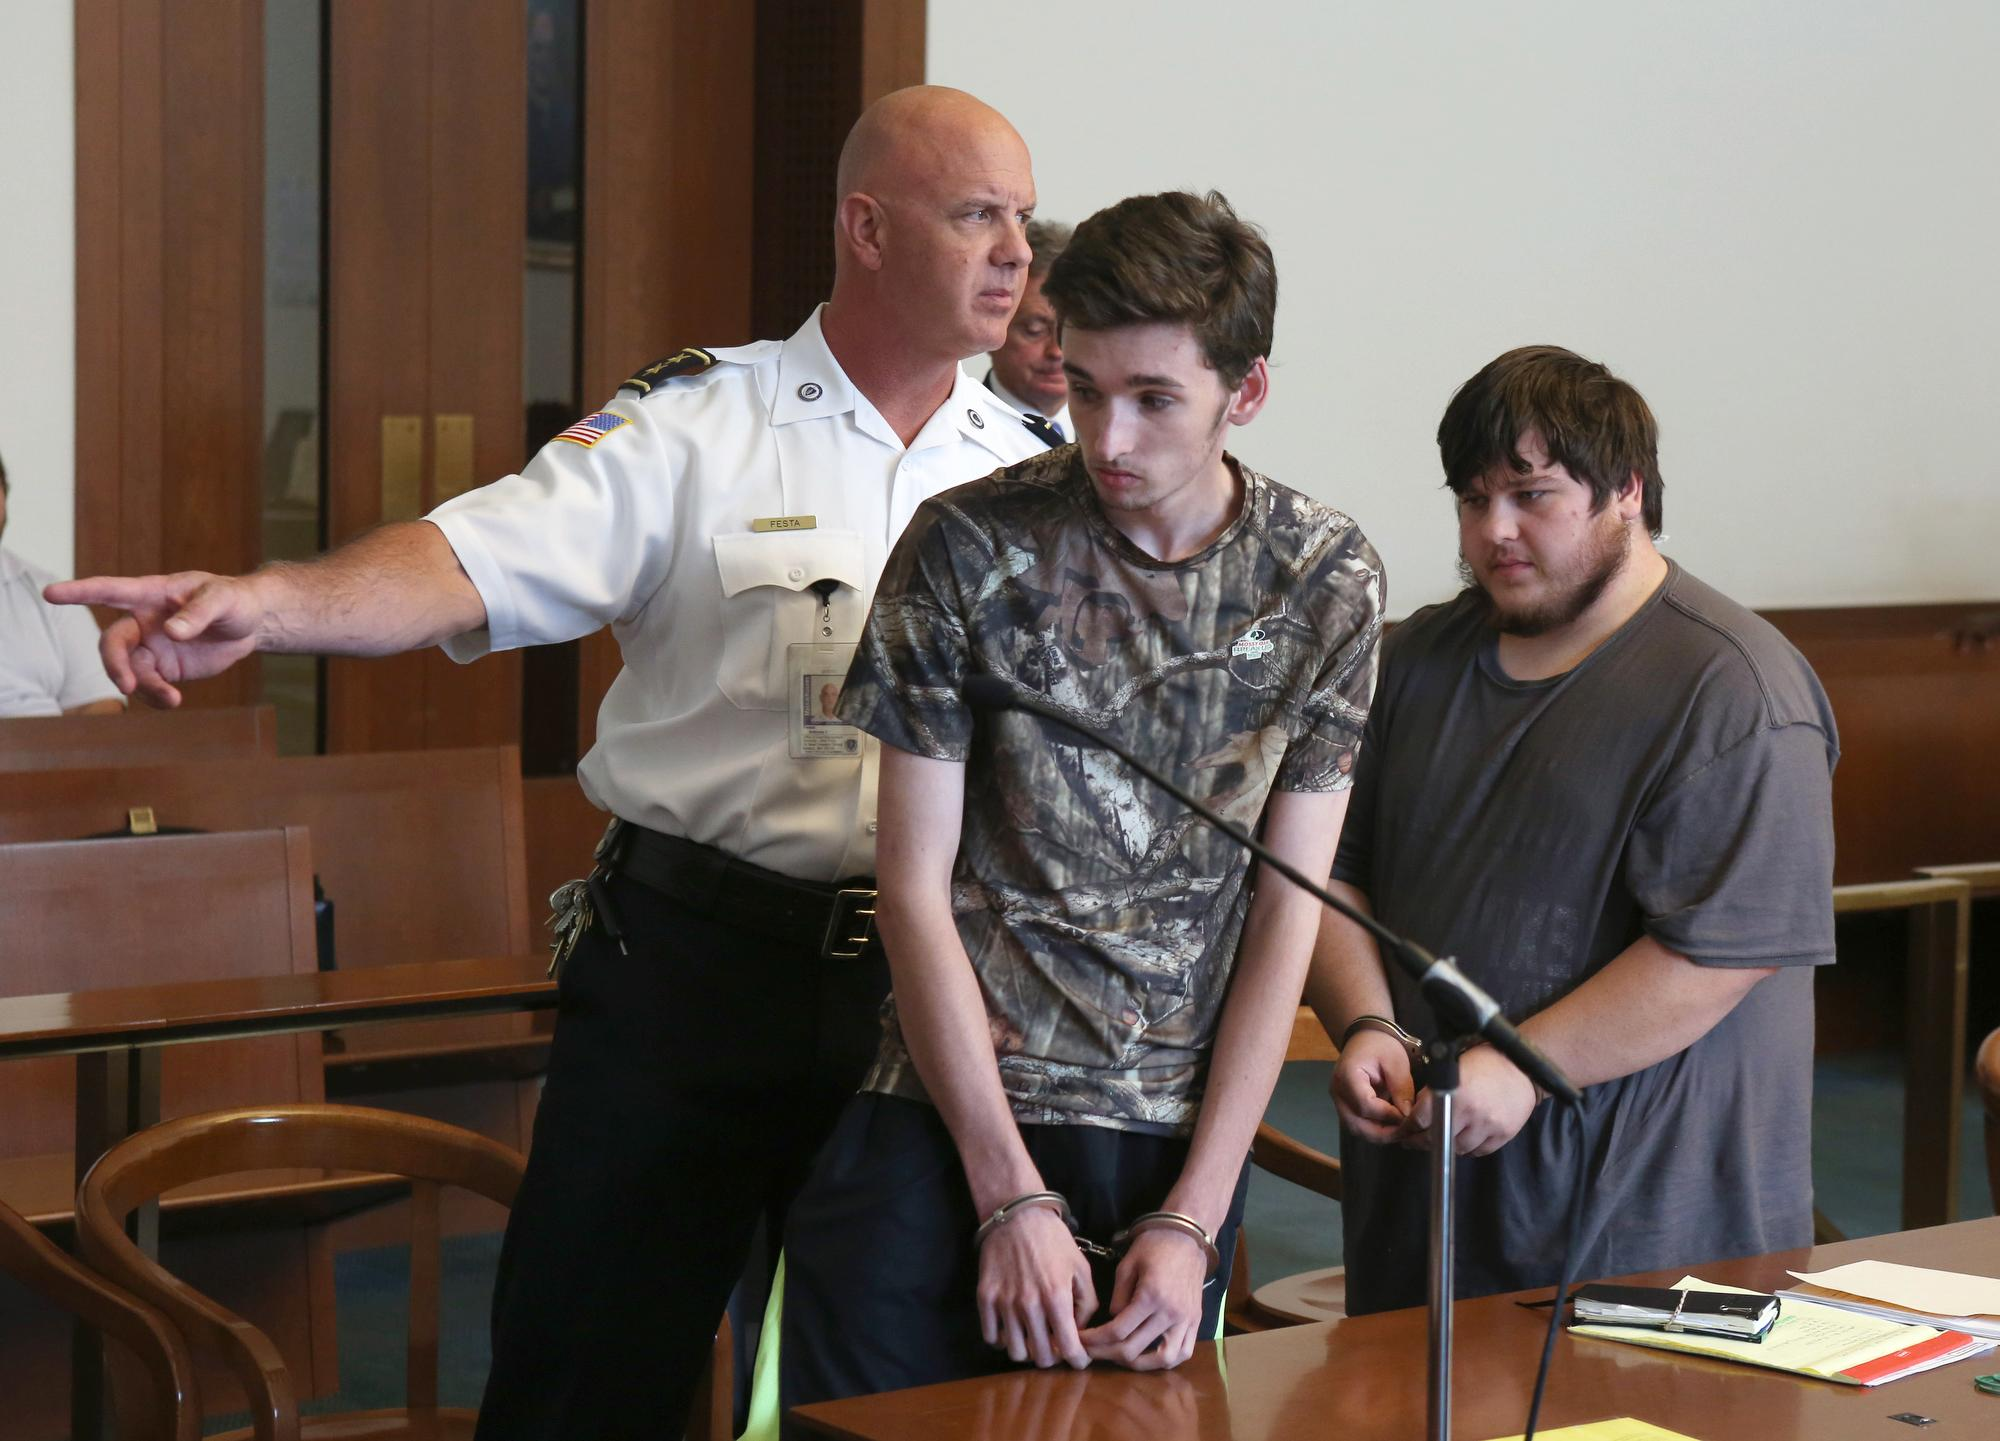 Men accused of threatening Pokemon championships denied bail